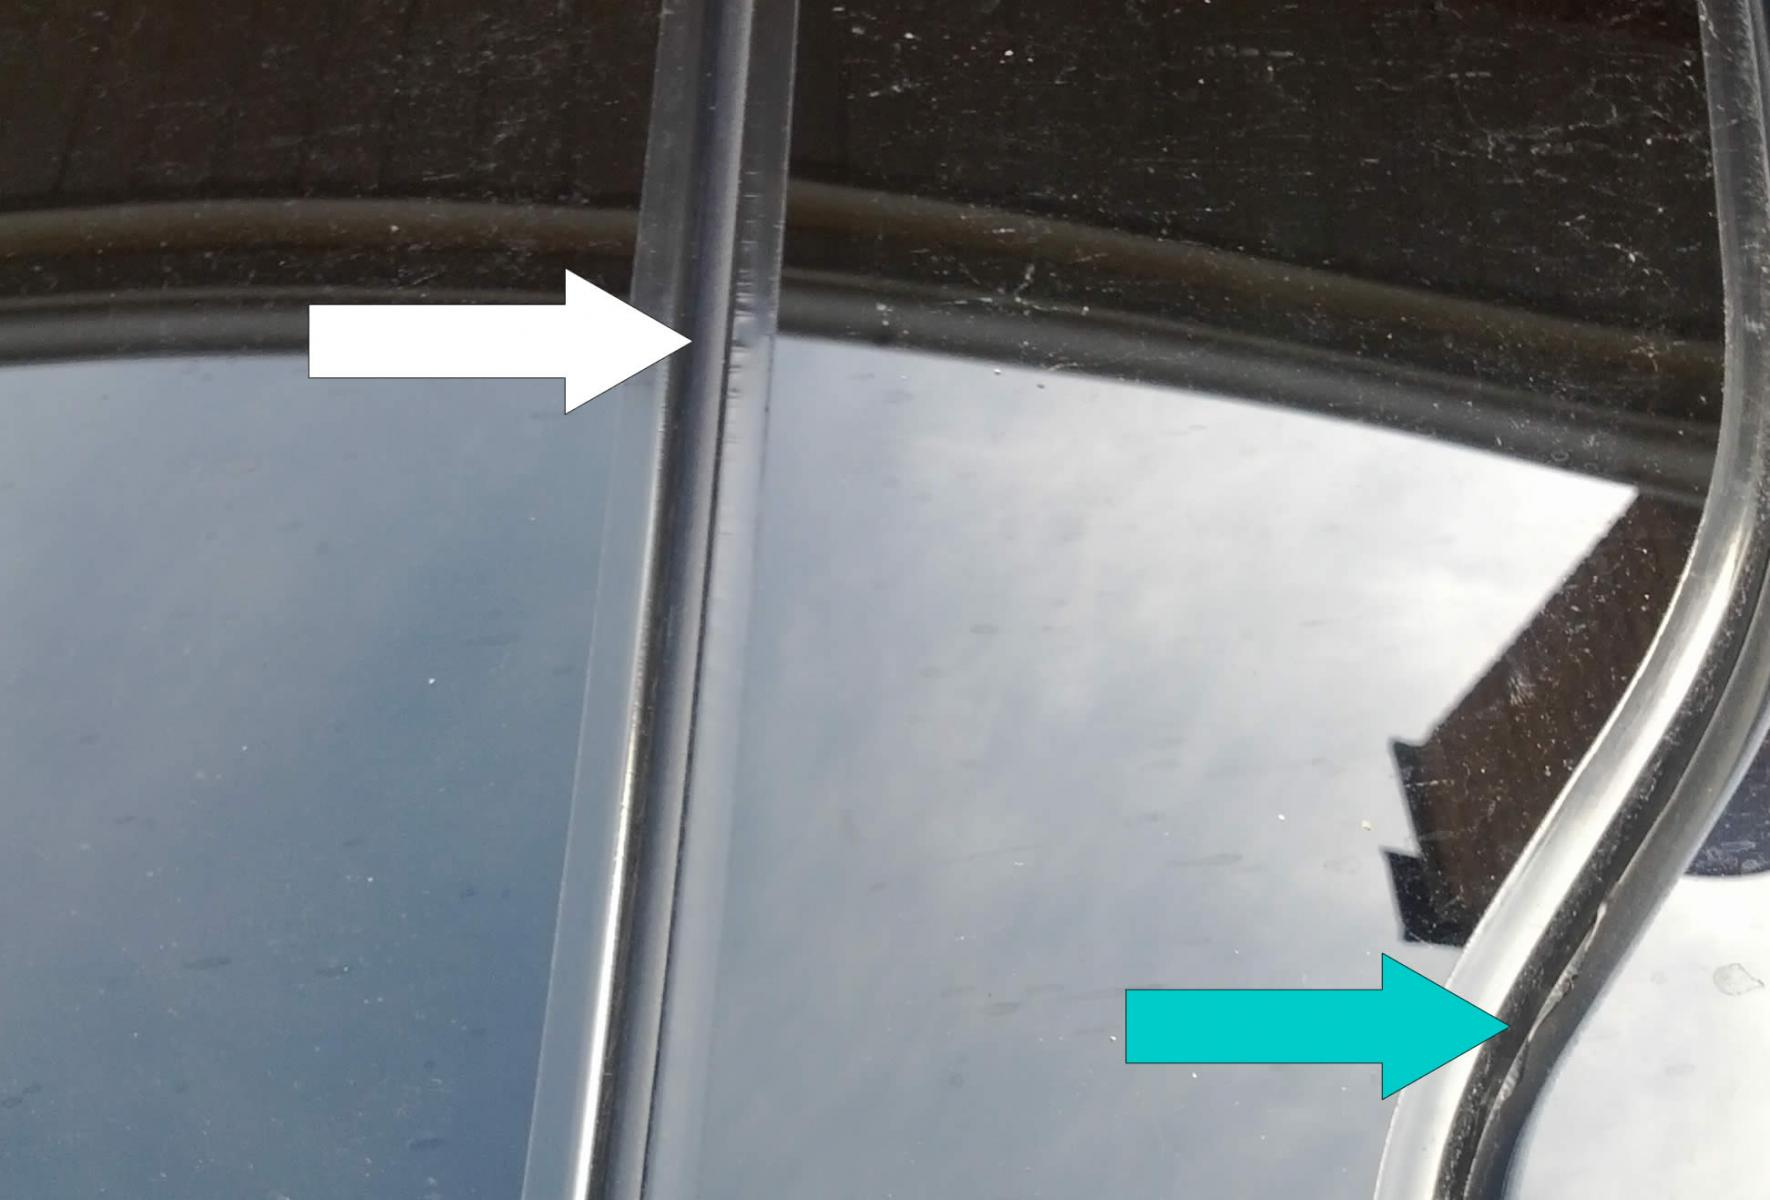 optima owners check your moon roof